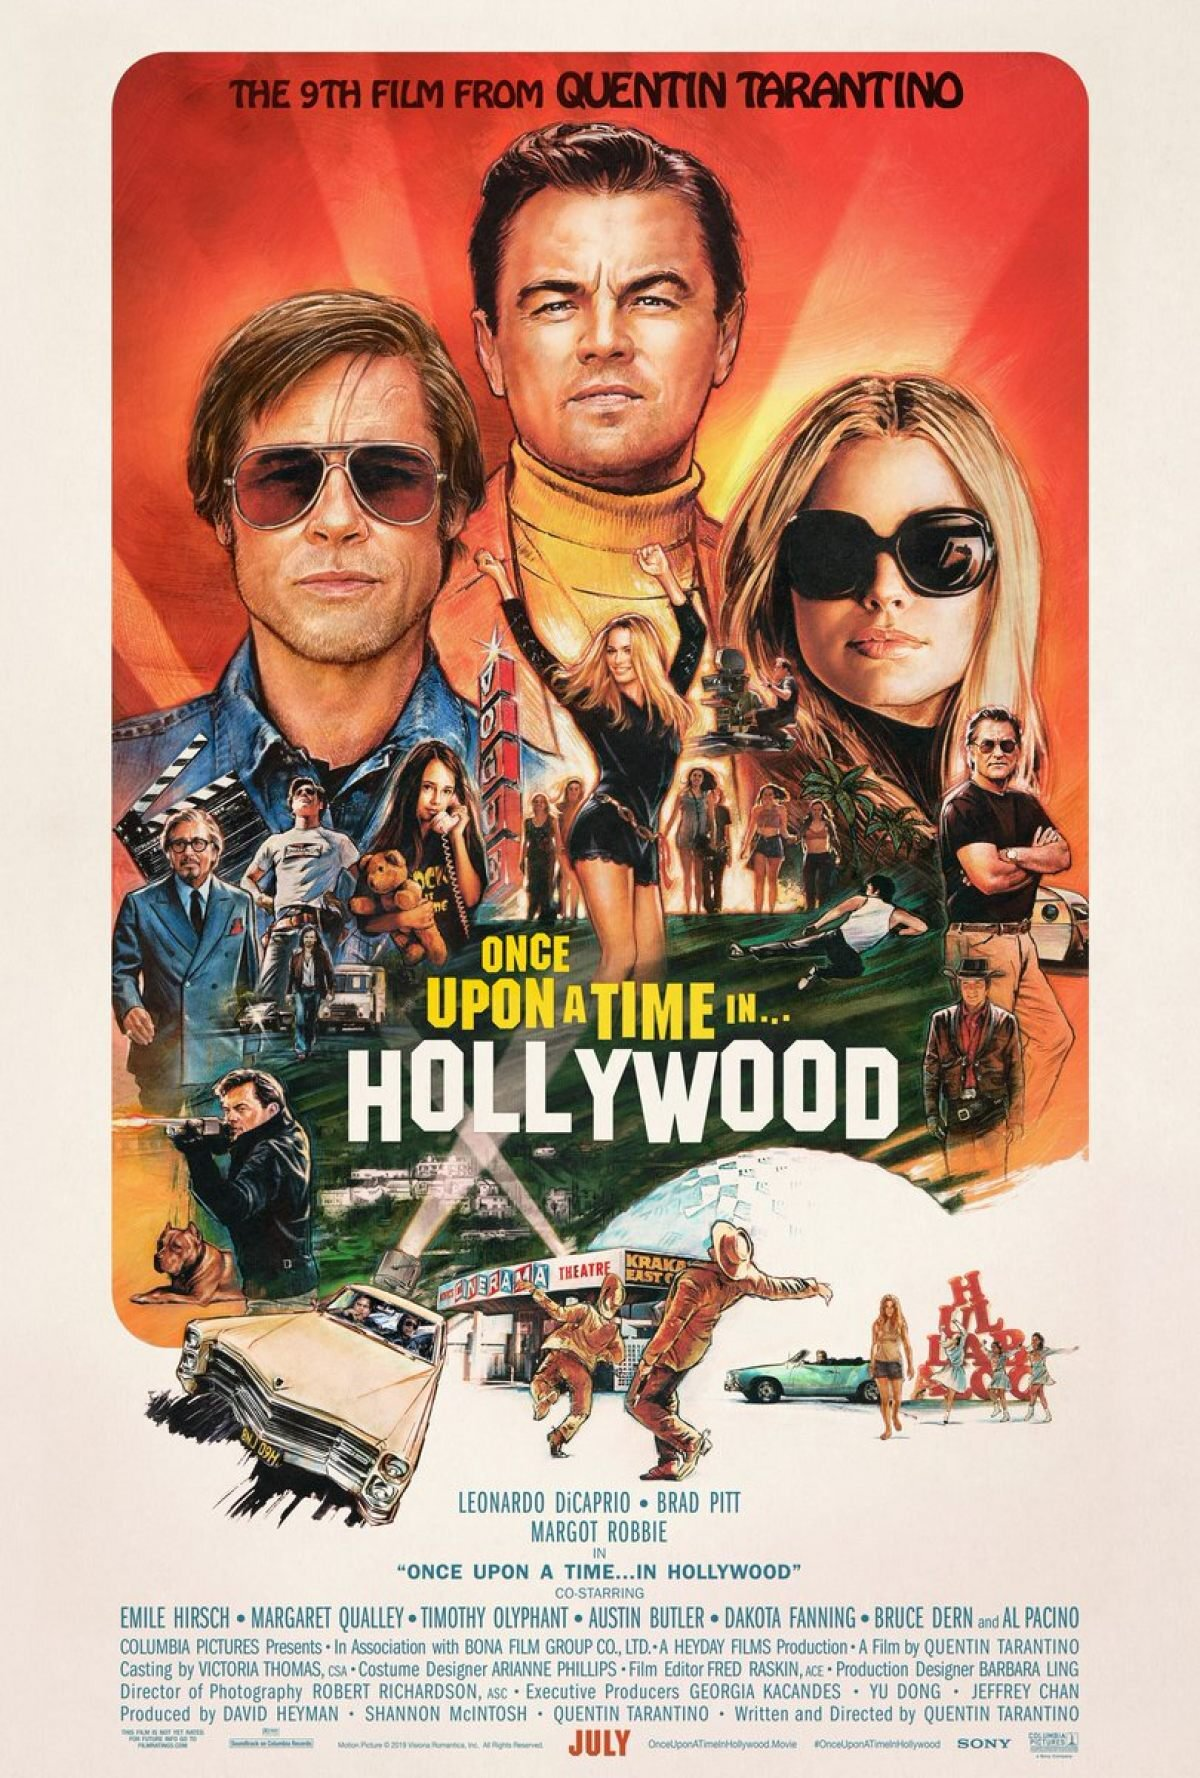 Once-Upon-A-Time-In-Hollywood-Poster-New-Header-2_1200_1778_81_s.jpg